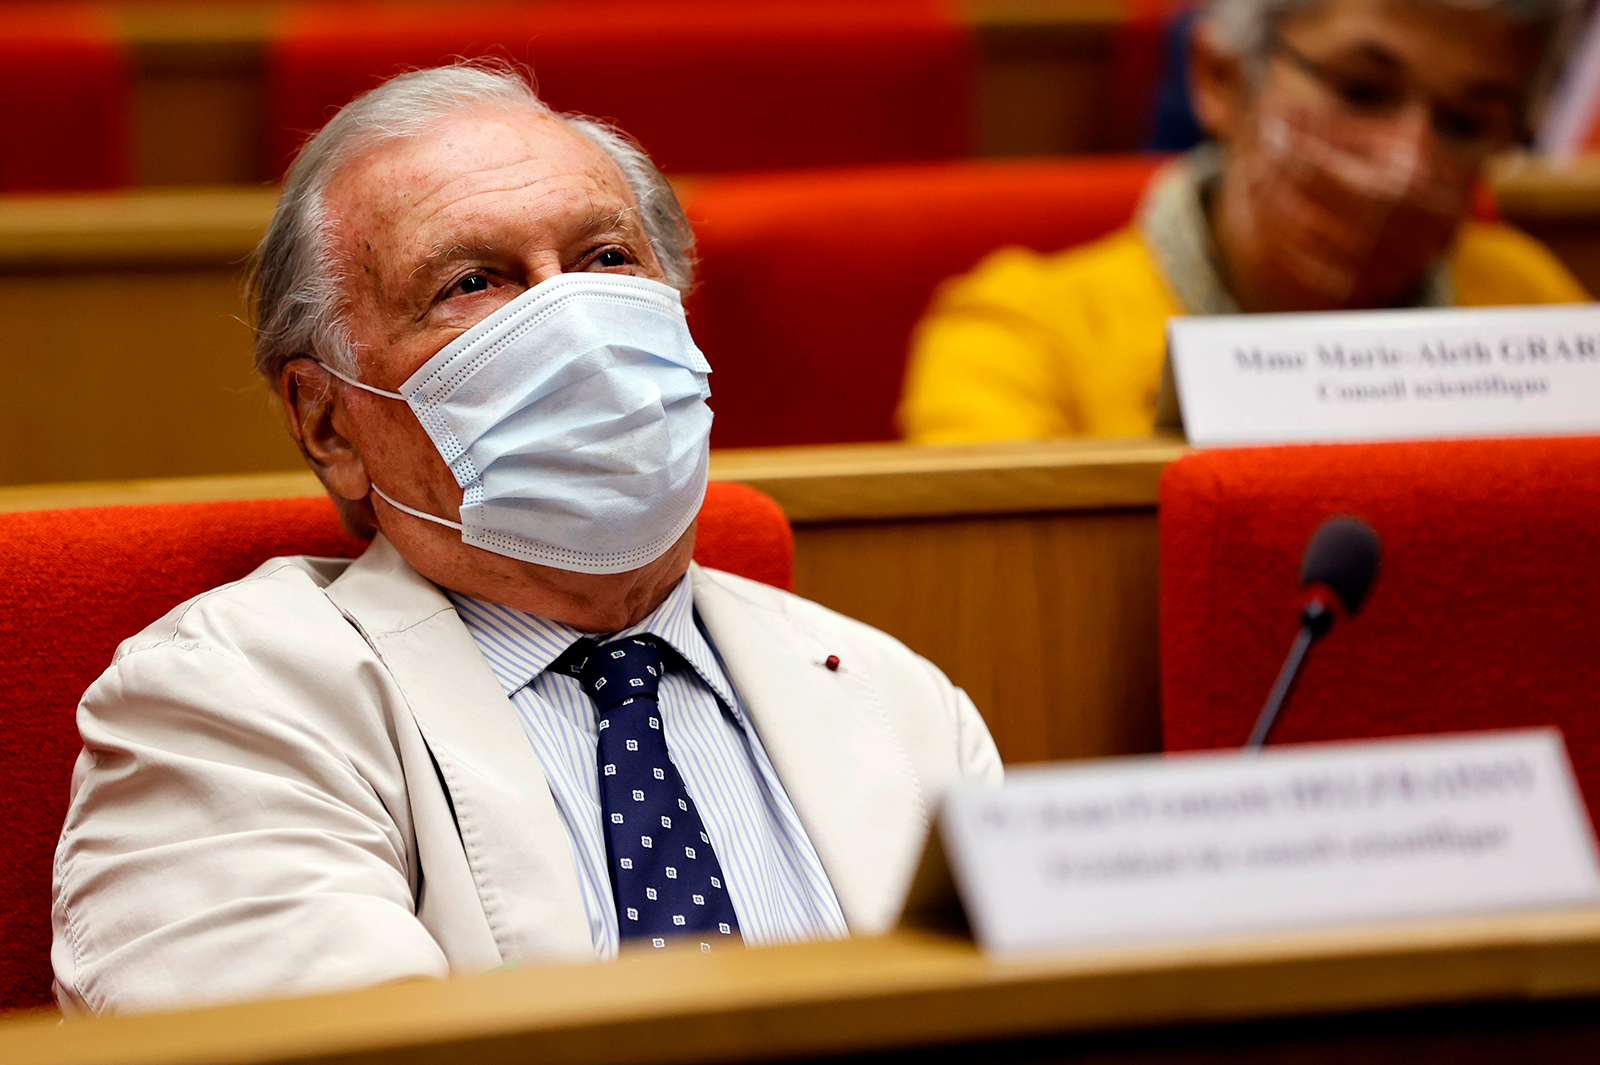 French physician Jean-Francois Delfraissy, head of France's scientific council on Covid-19 is seen at the Senate in Paris, on September 15, 2020.